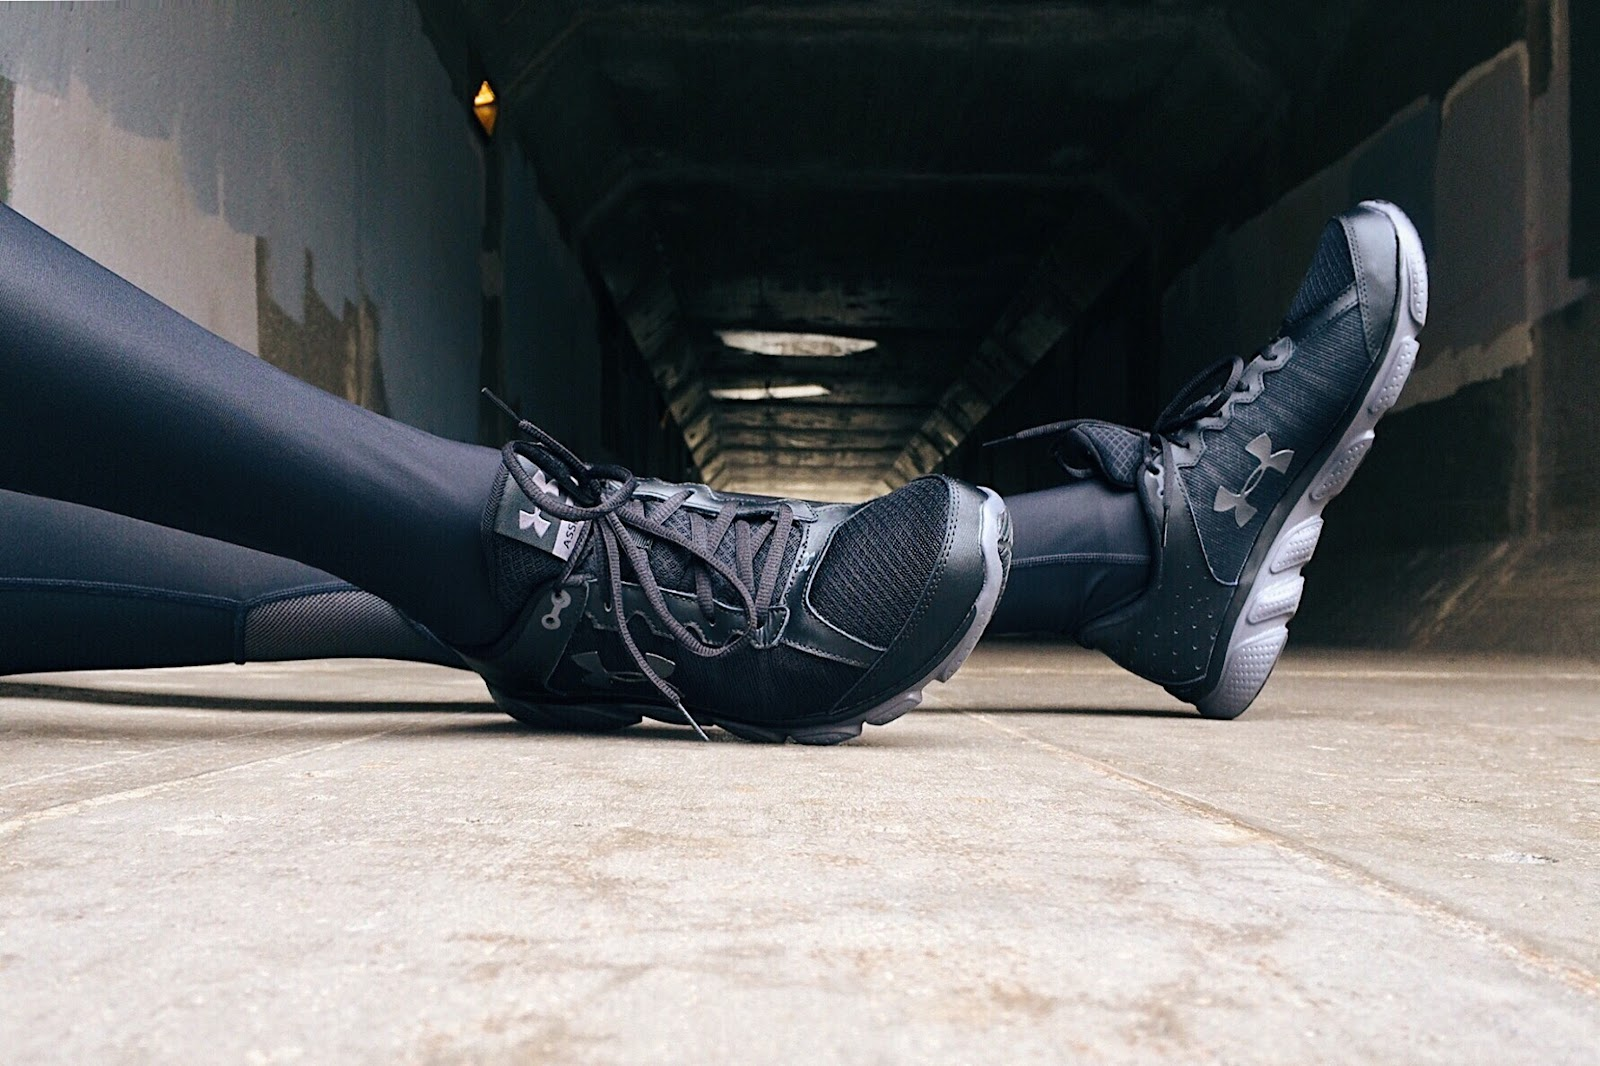 This is a photo of black athletic shoes on a pair of feet wearing black athletic leggings.